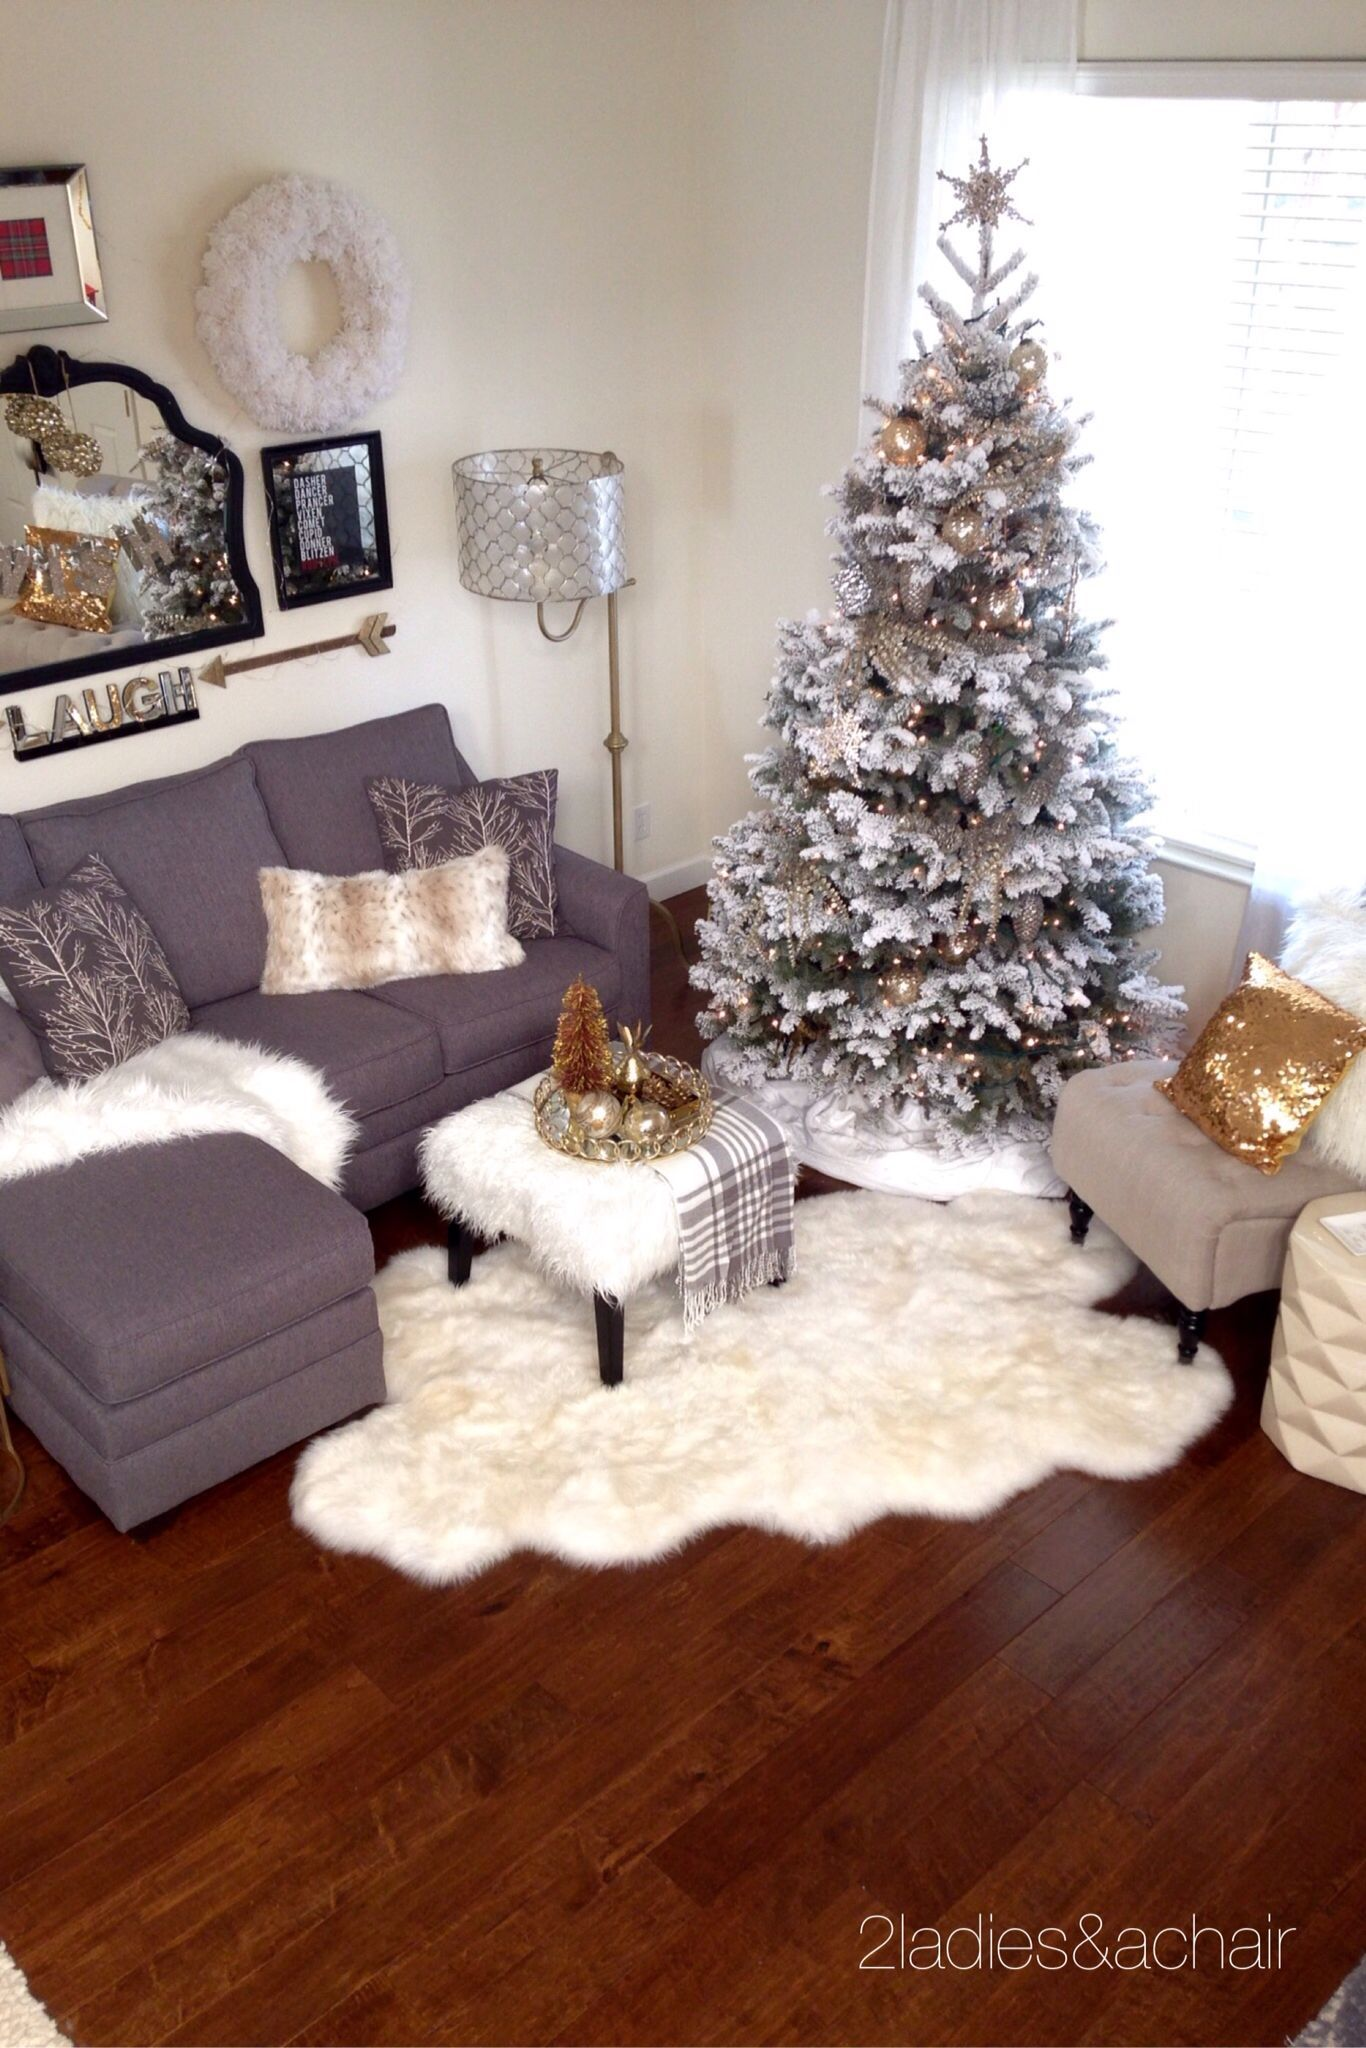 41 Best Diy Apartment Small Living Room Ideas On A Budget 2018 Interiordecorona In 2020 Christmas Decorations Living Room Christmas Apartment Christmas Living Rooms